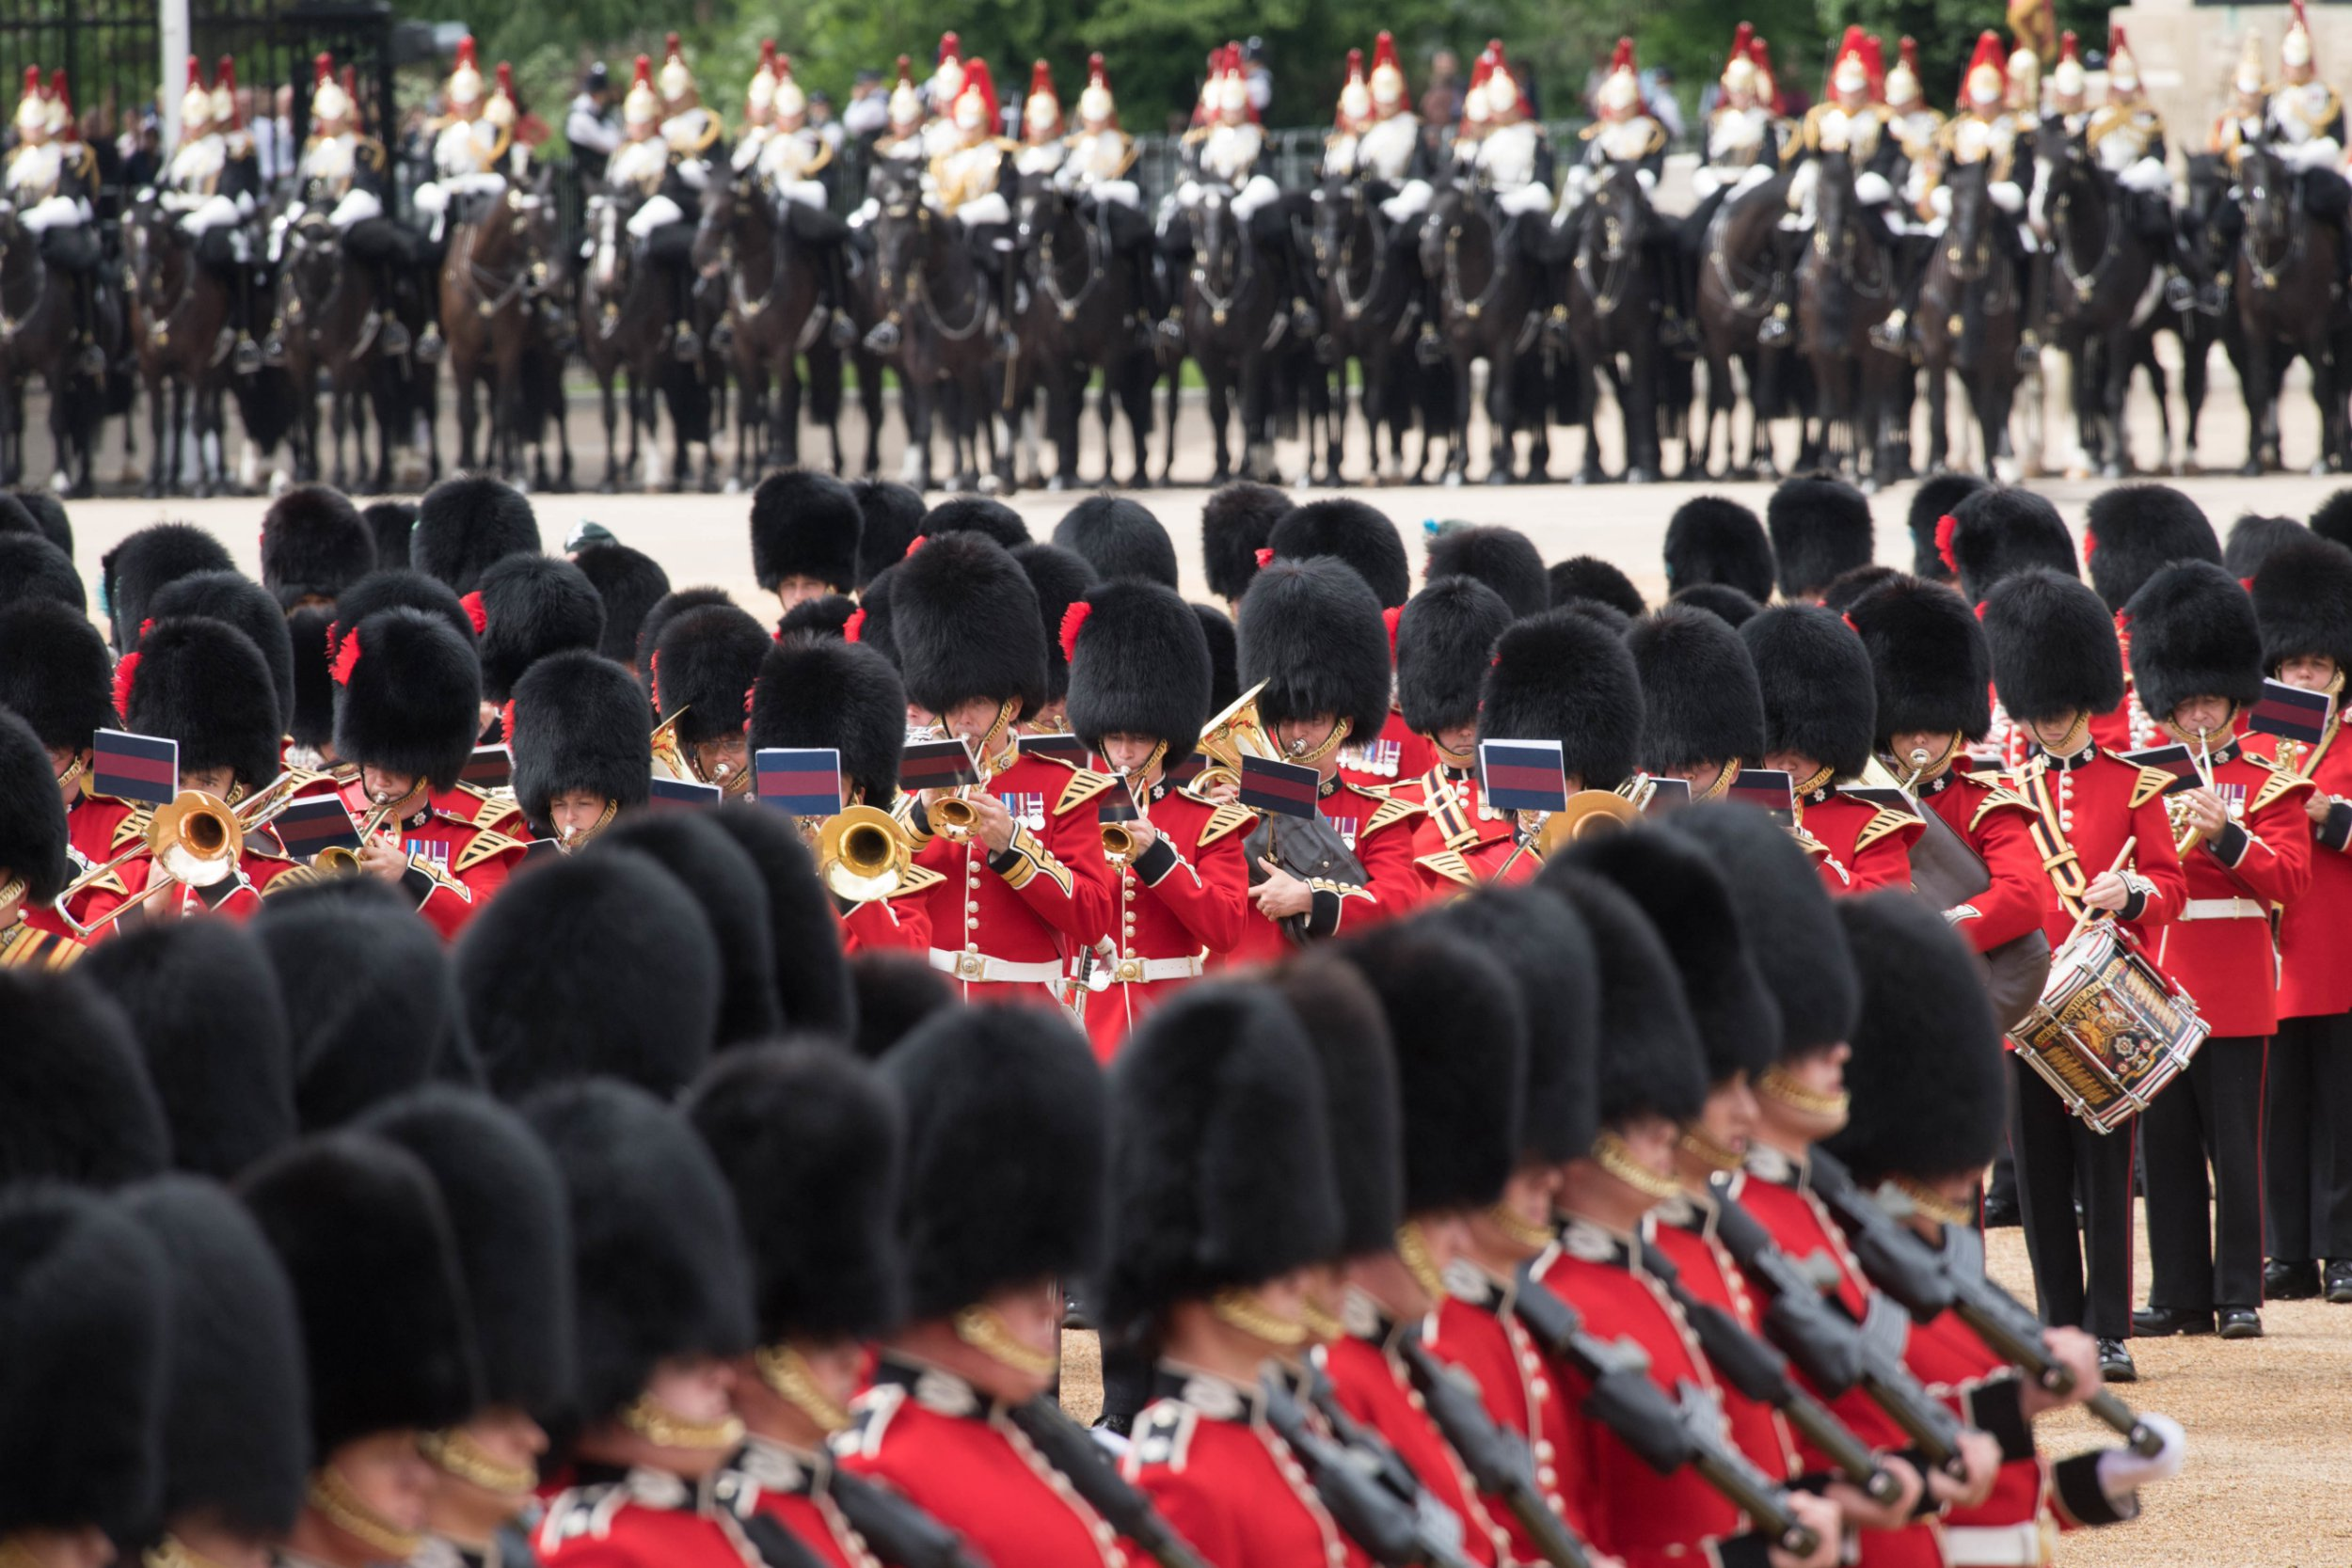 Soldiers perform during the Colonel's Review, which is the final rehearsal for Trooping the Colour, the Queen's annual birthday parade, in Central London. PRESS ASSOCIATION Photo. Picture date: Saturday June 2, 2018. Photo credit should read: Stefan Rousseau/PA Wire